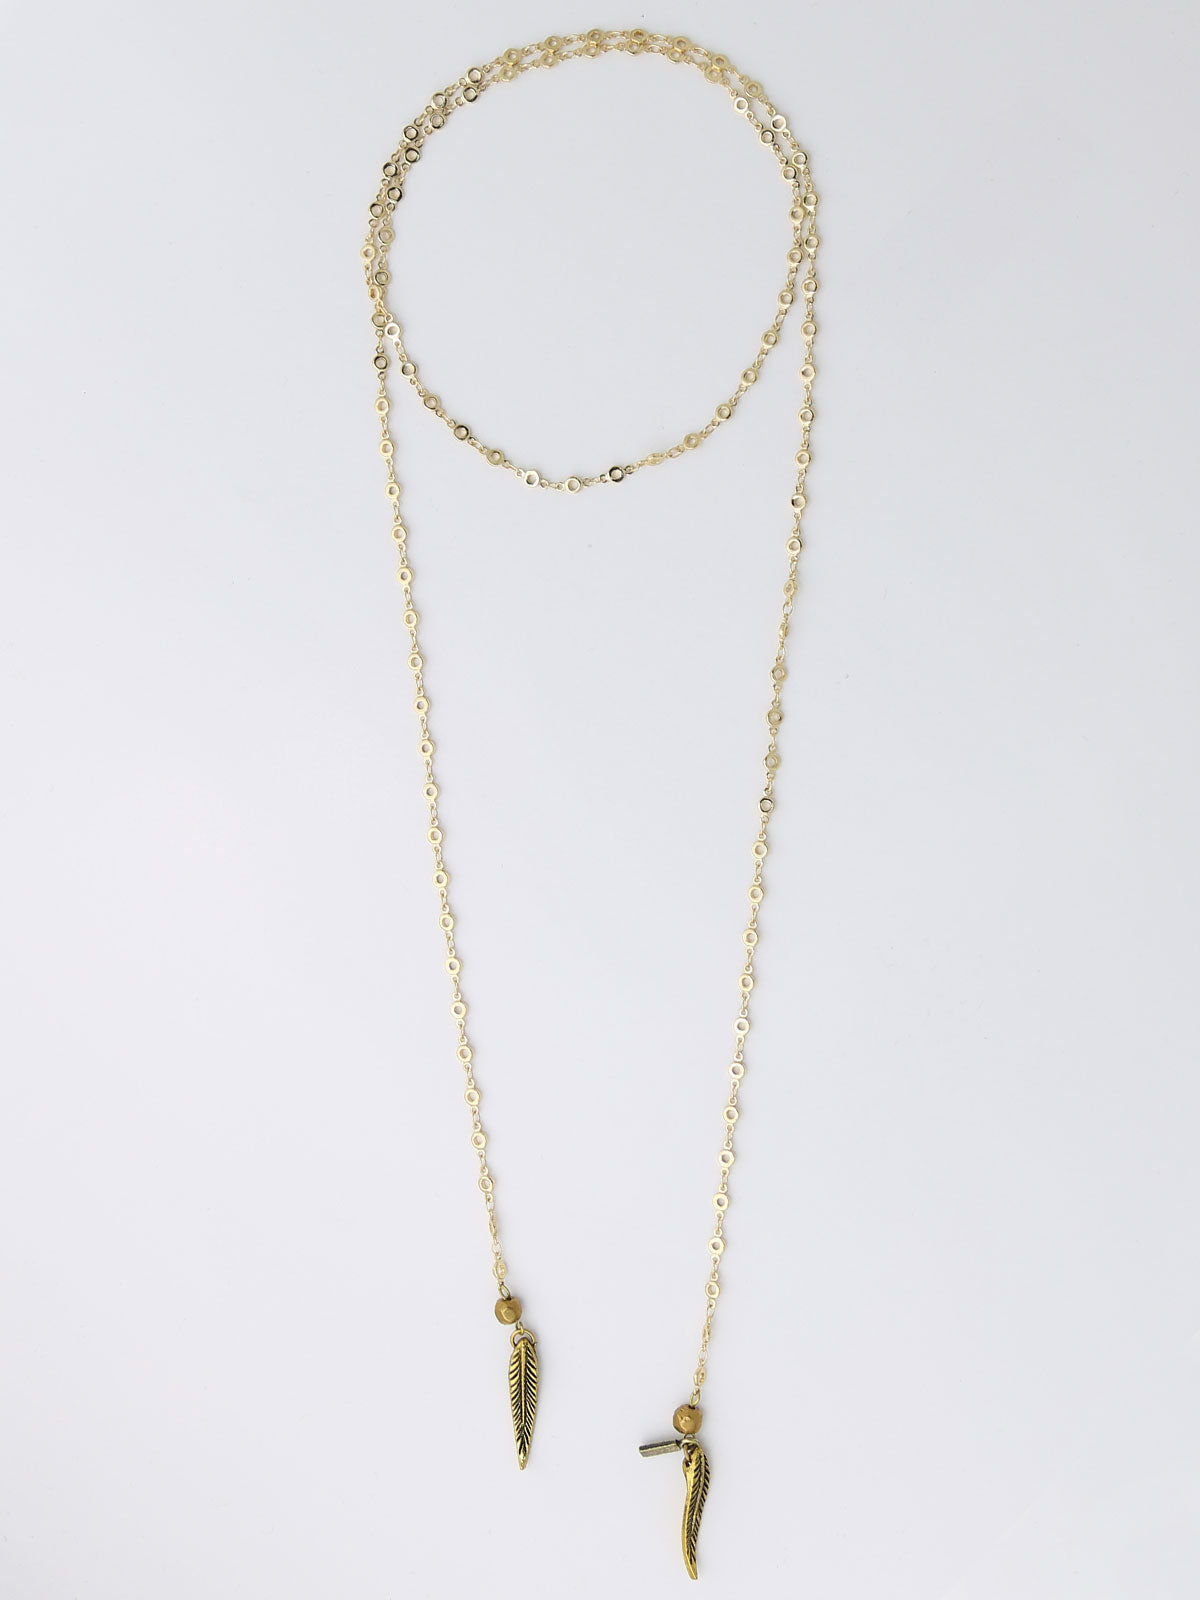 The Maris Necklace